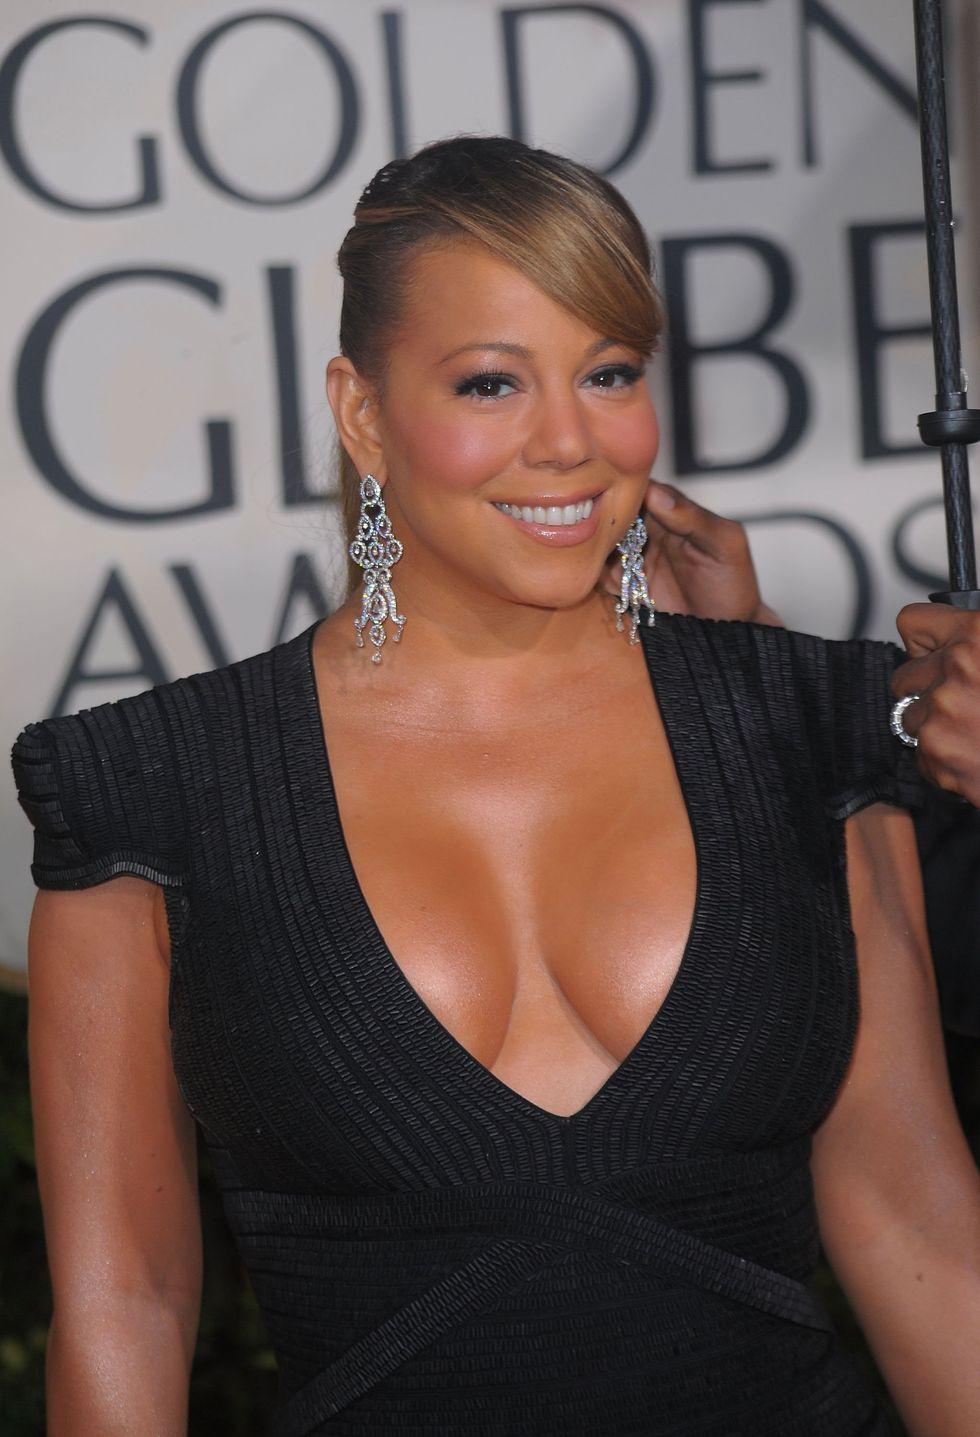 mariah-carey-huge-cleavage-at-2010-golden-globe-awards-06